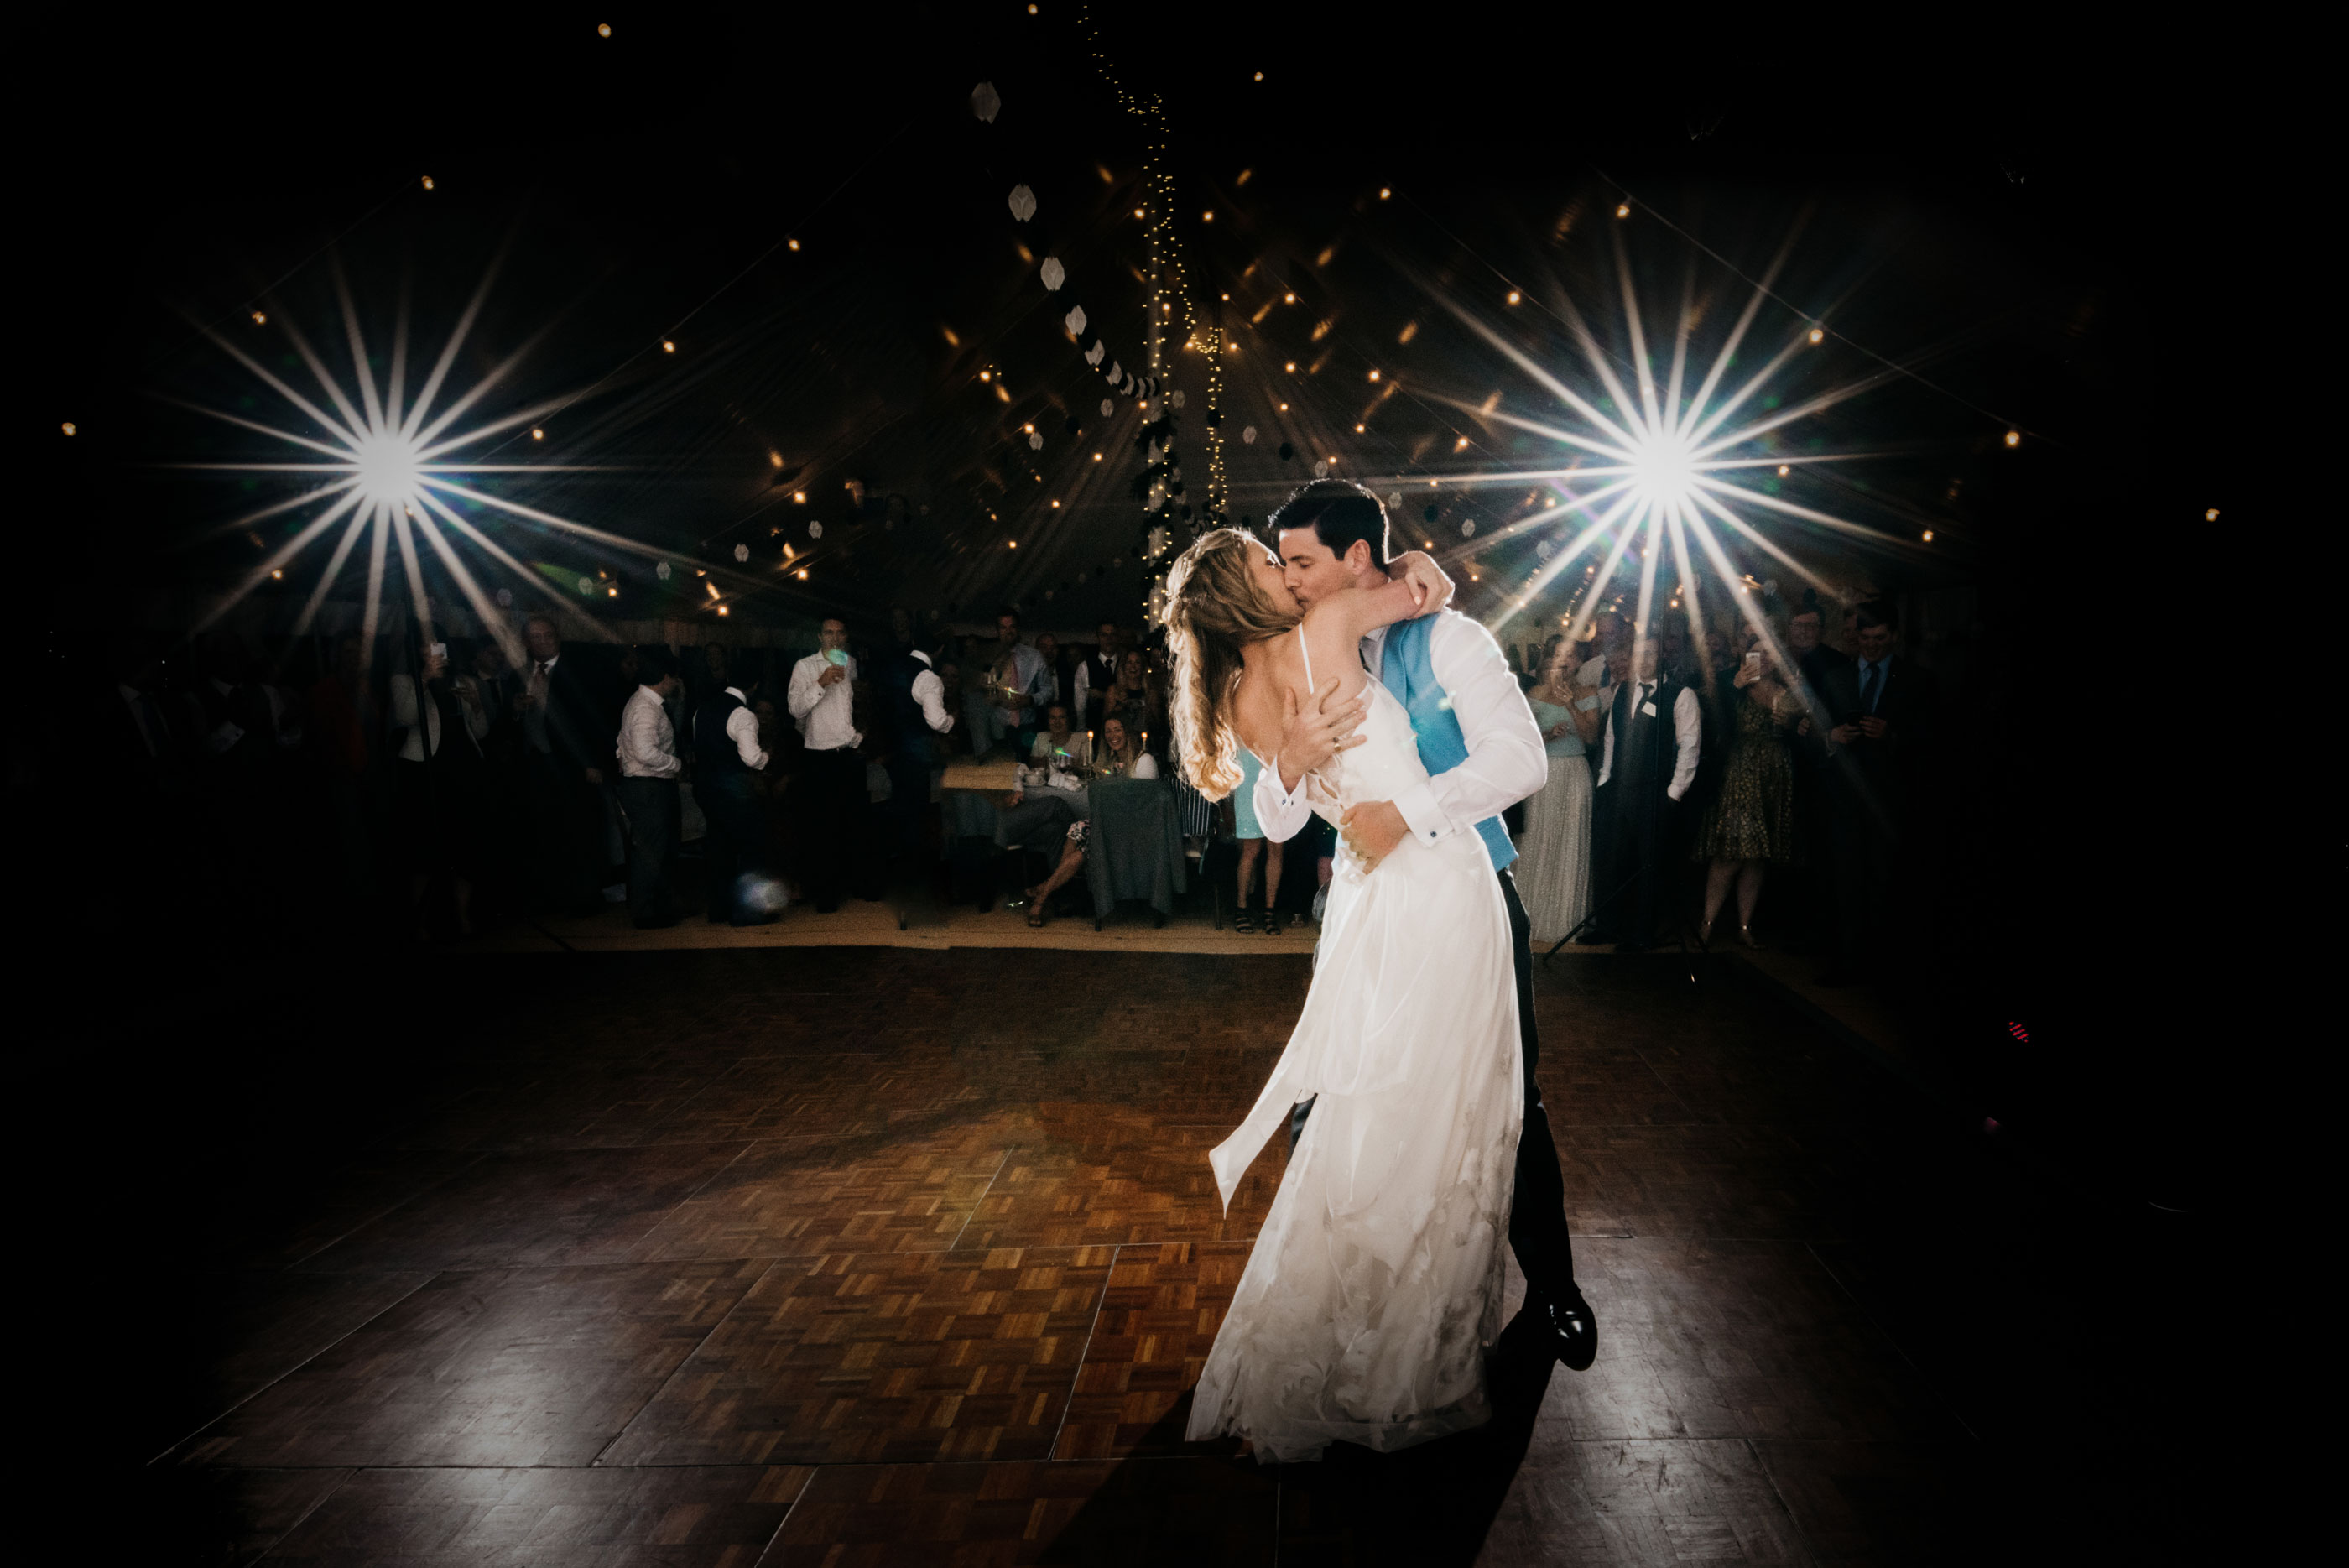 bride and groom sharing their first dance with flash lights in the background